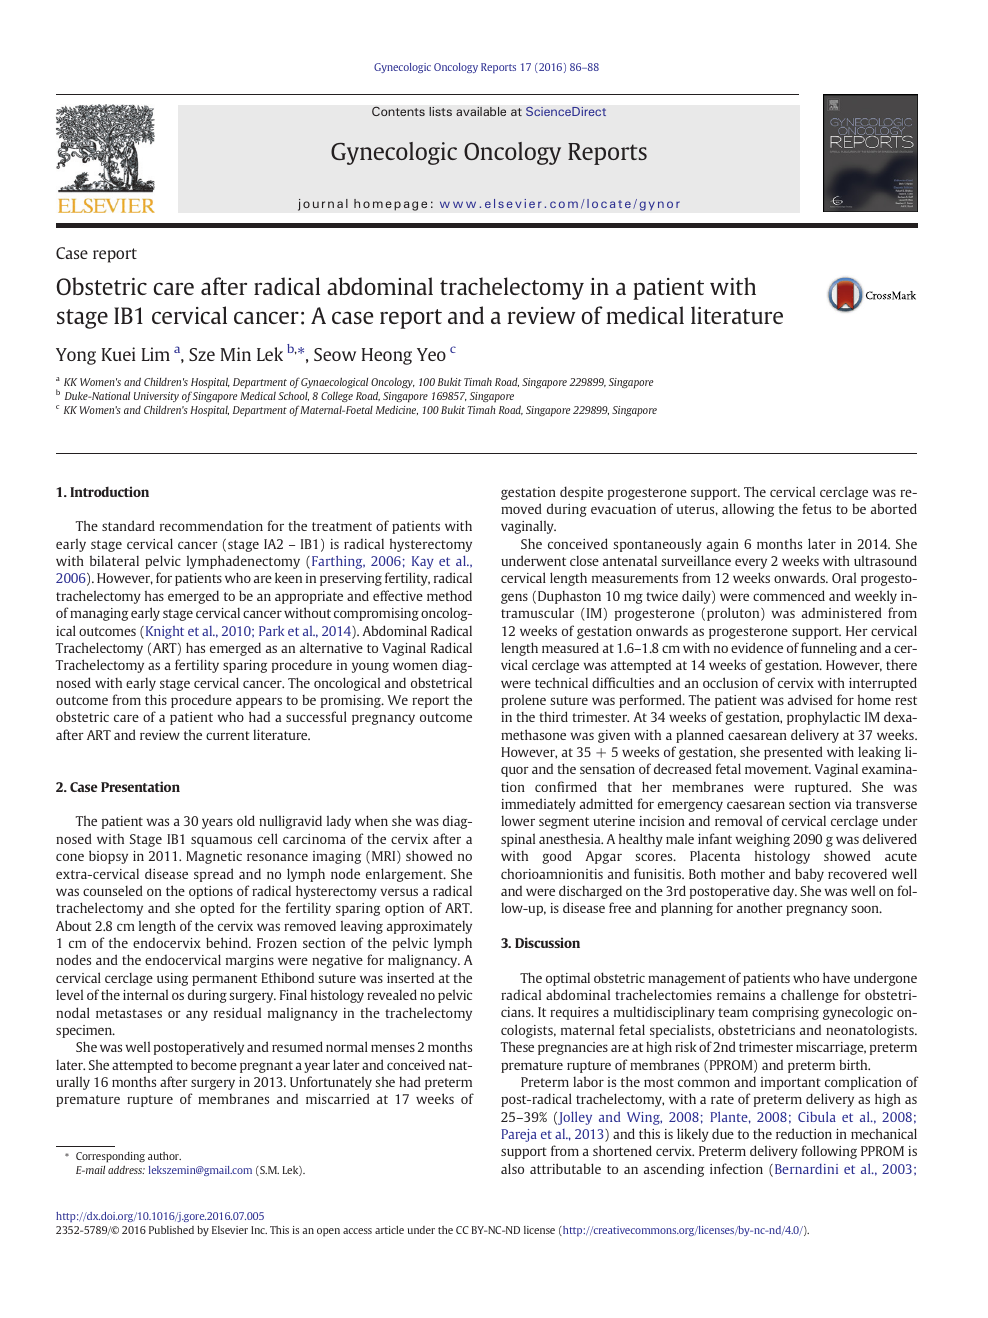 Obstetric care after radical abdominal trachelectomy in a patient